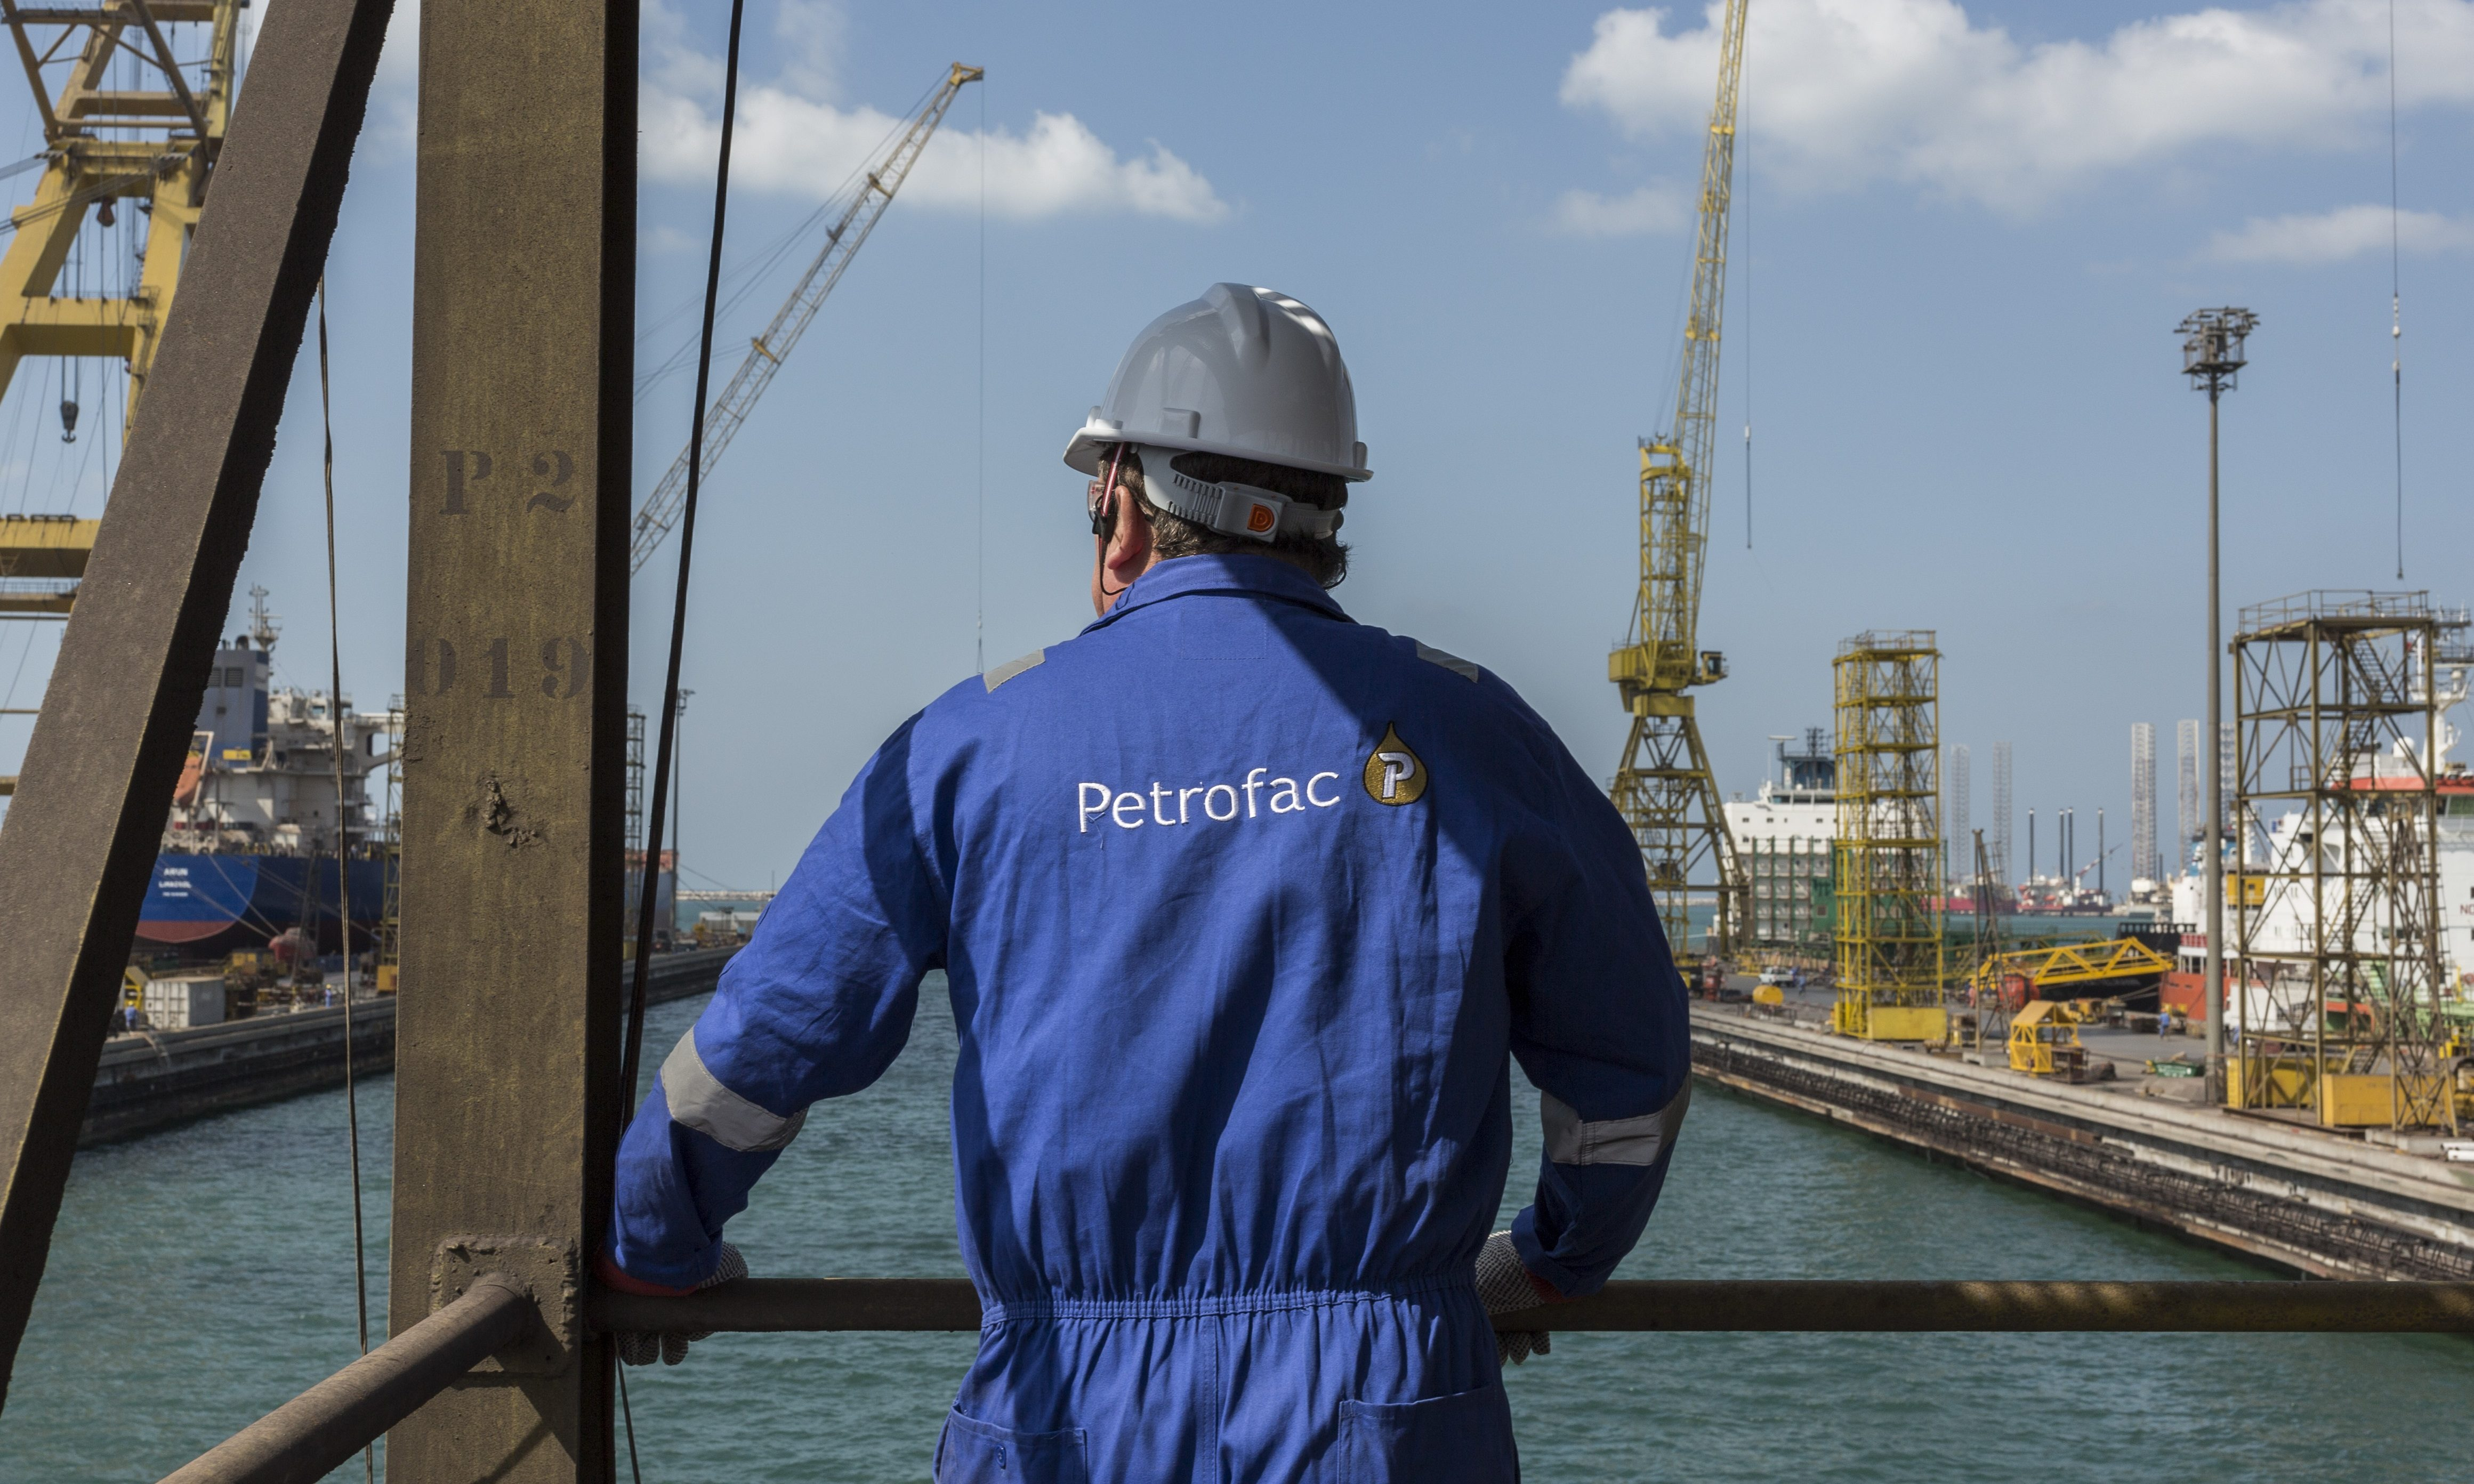 Petrofac has been handed a key role for Seagreen wind farm project